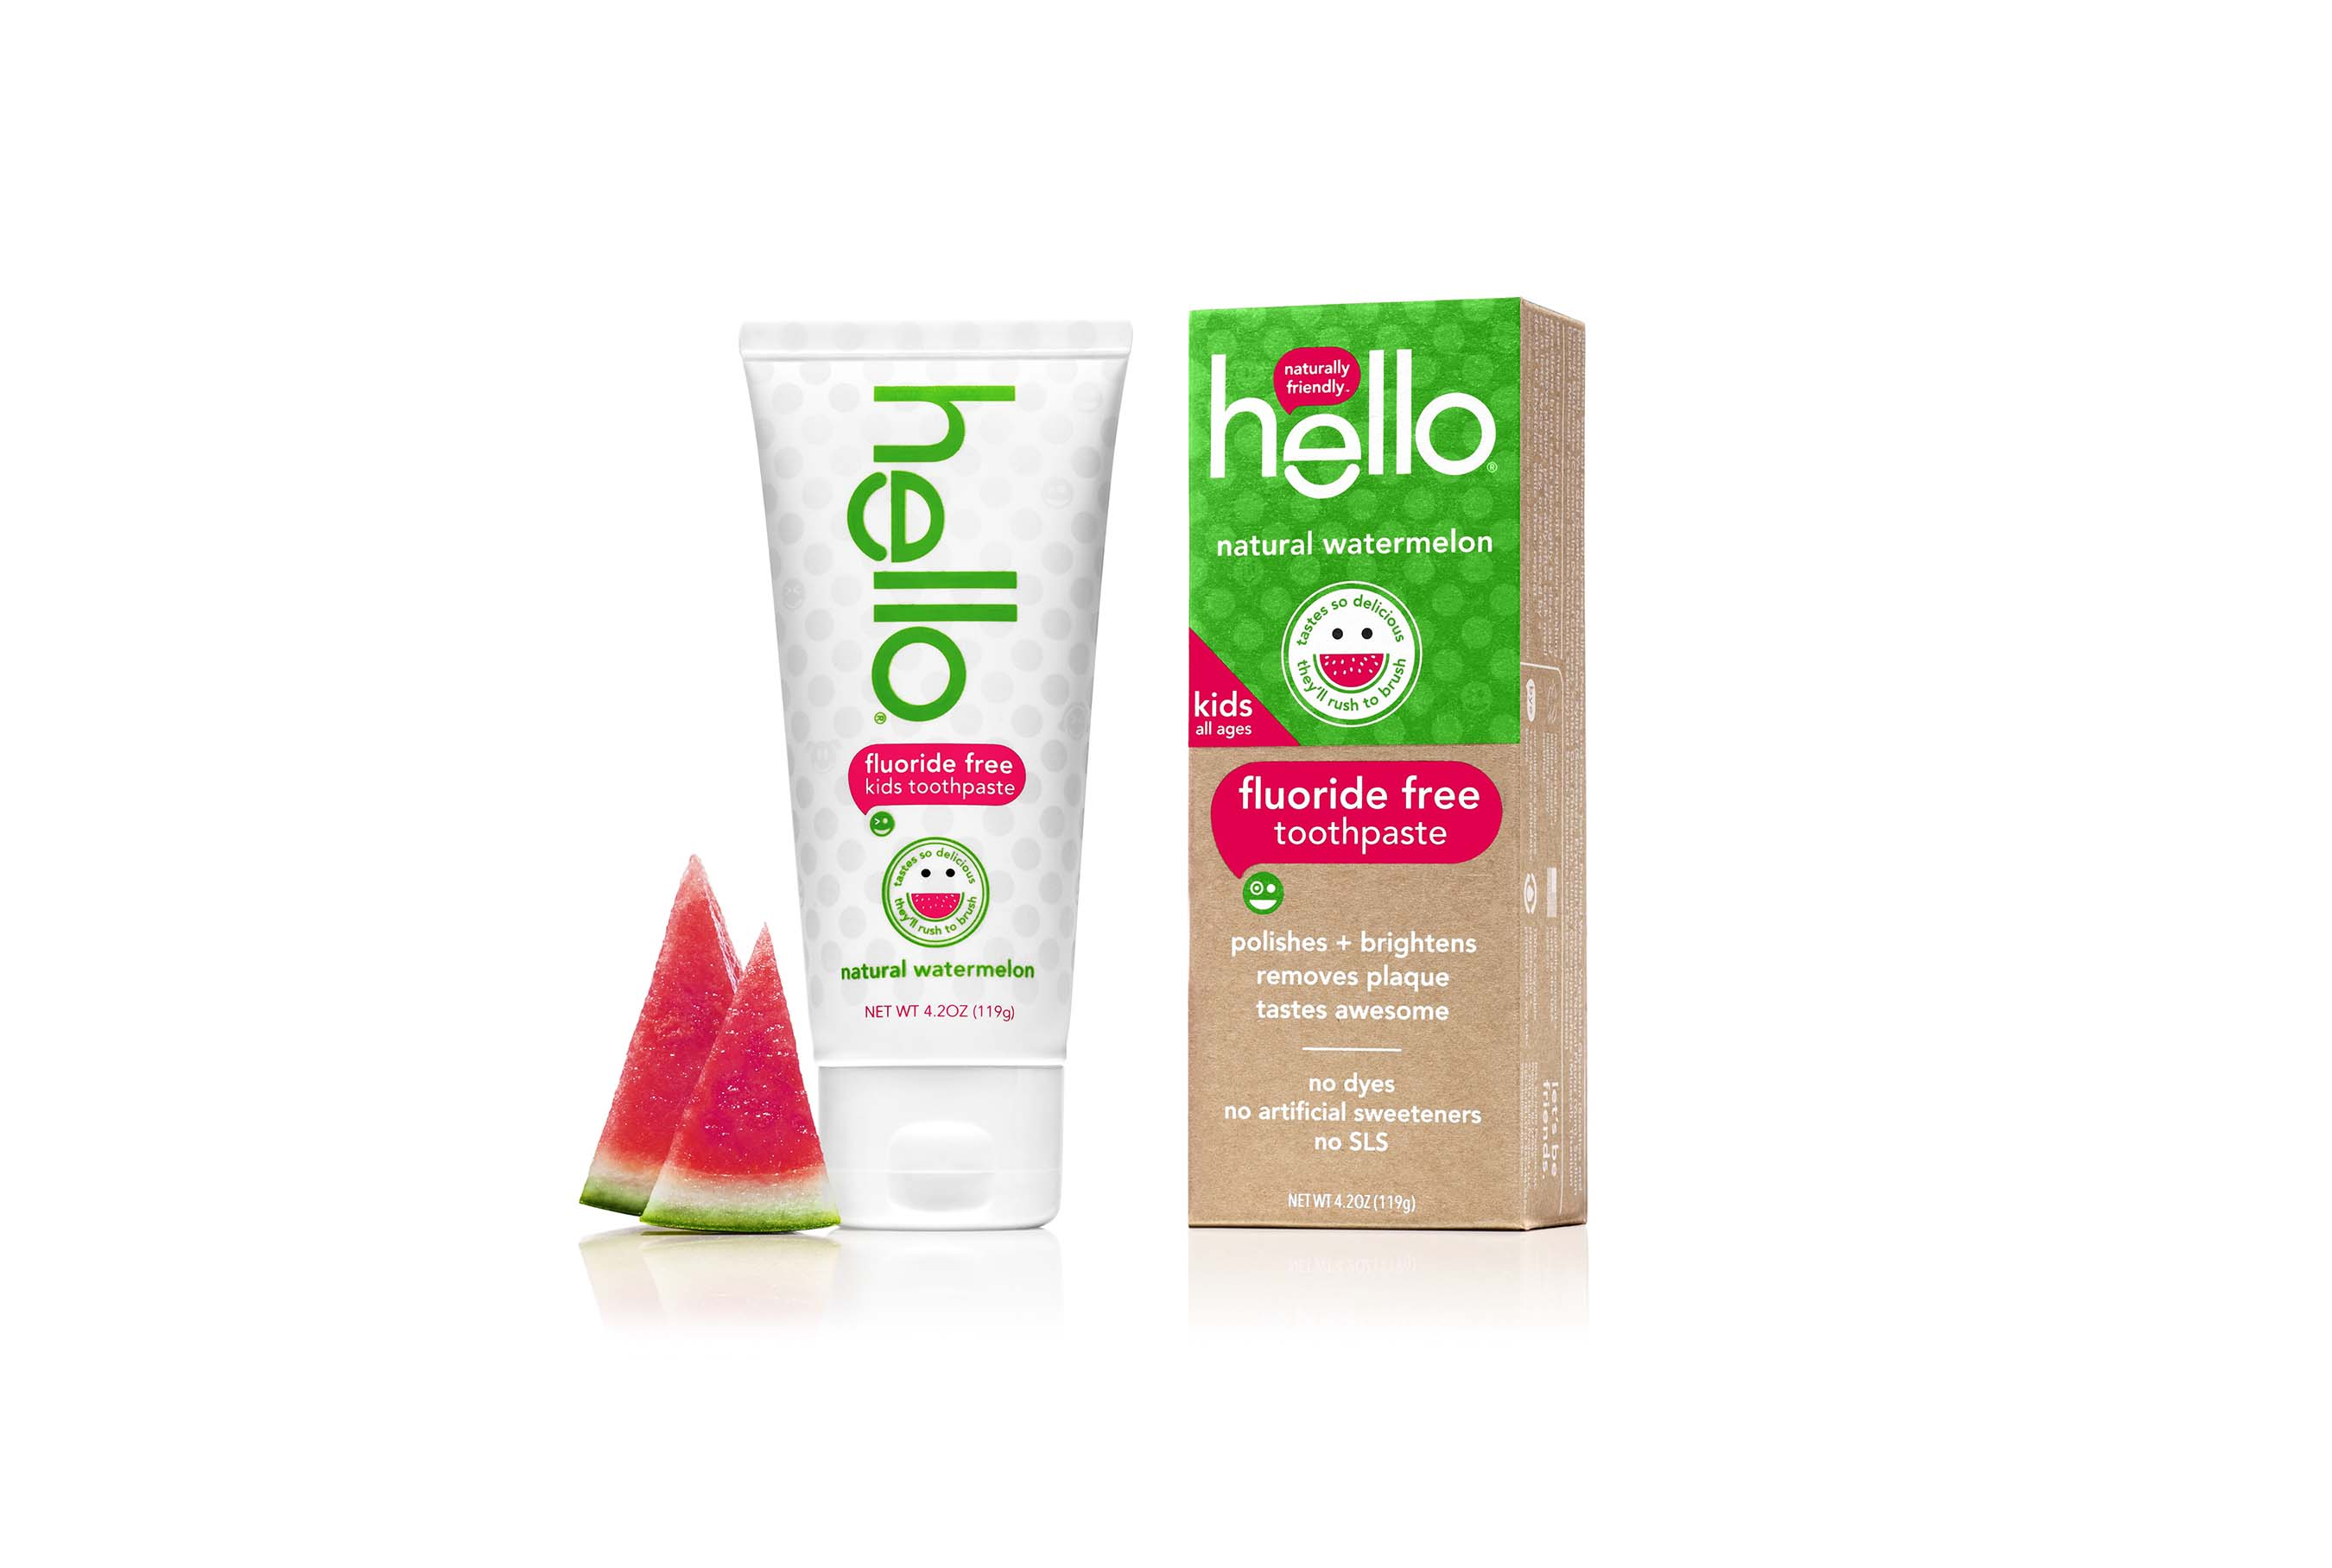 hello natural watermelon toothpaste